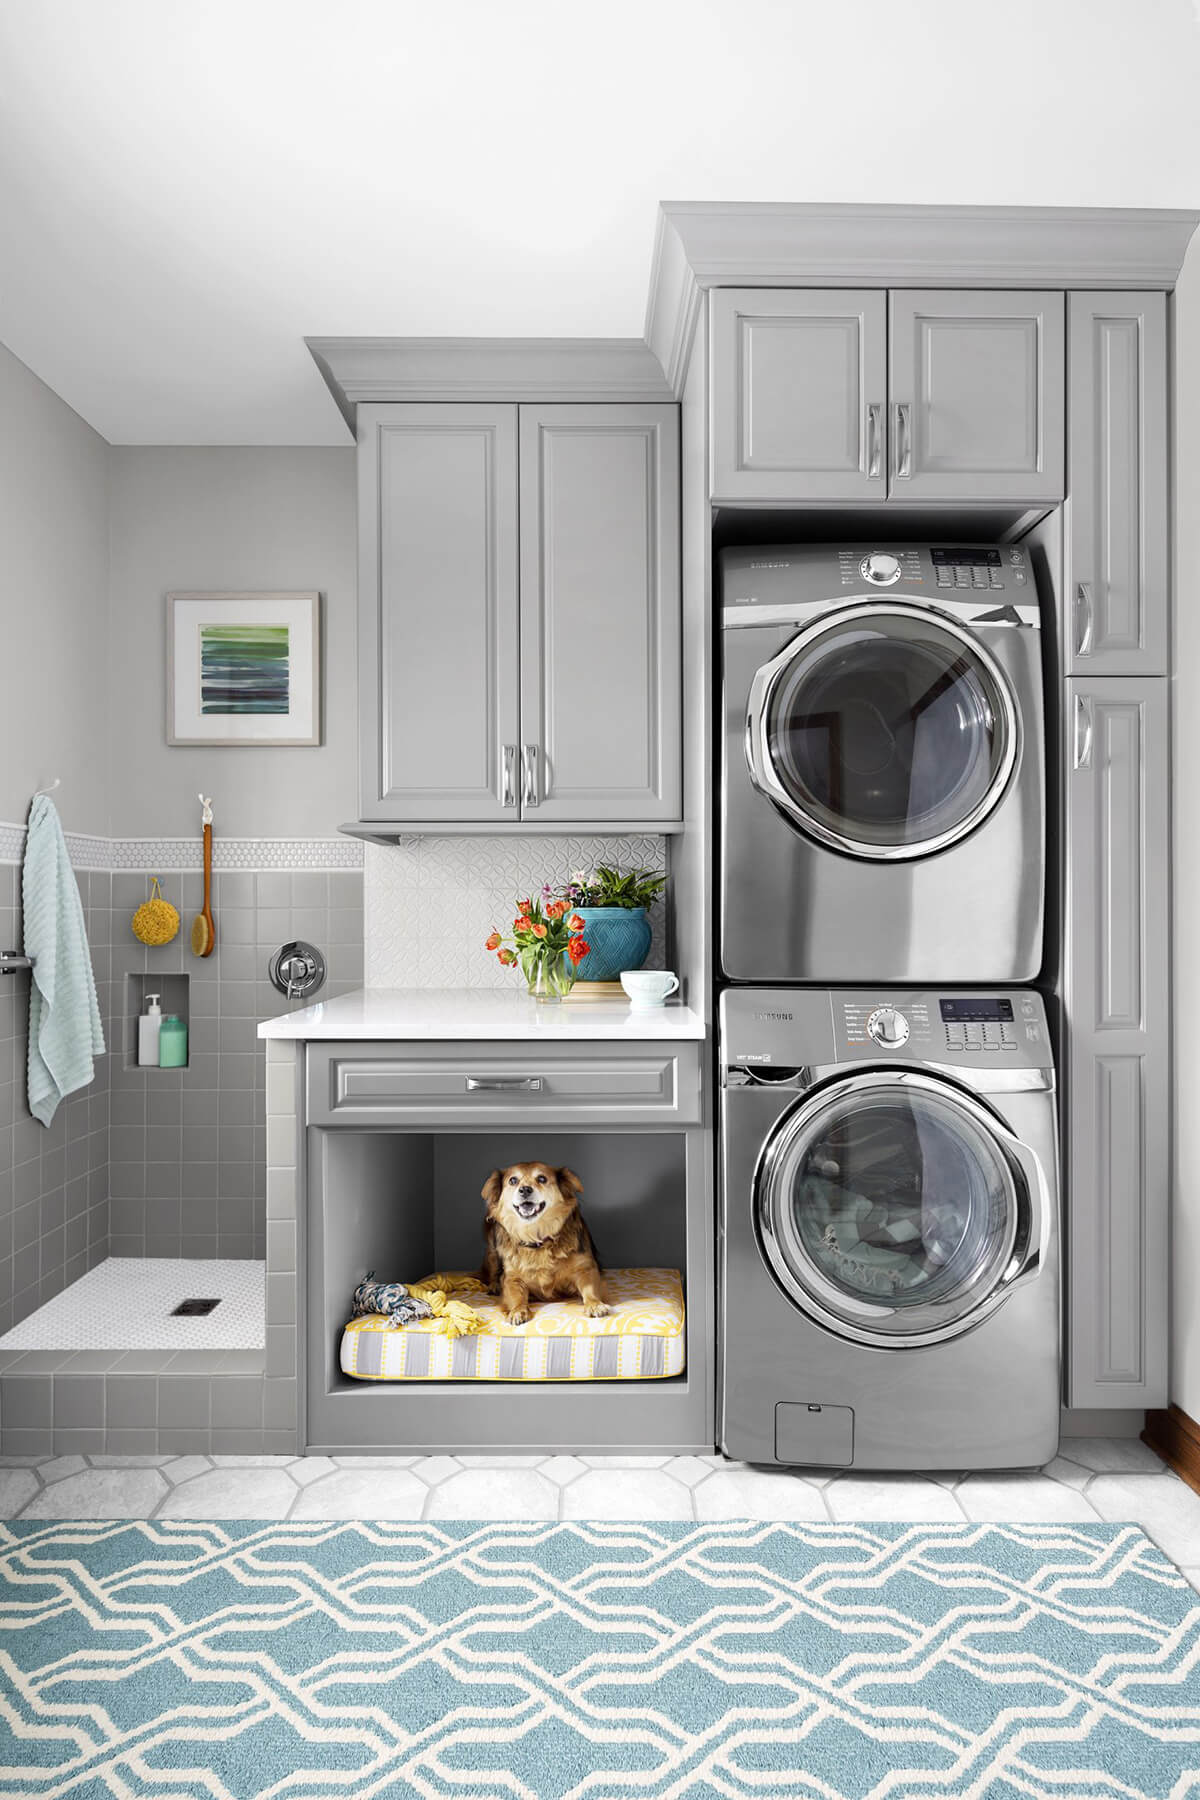 28 Best Small Laundry Room Design Ideas for 2020 on Laundry Decoration  id=85210